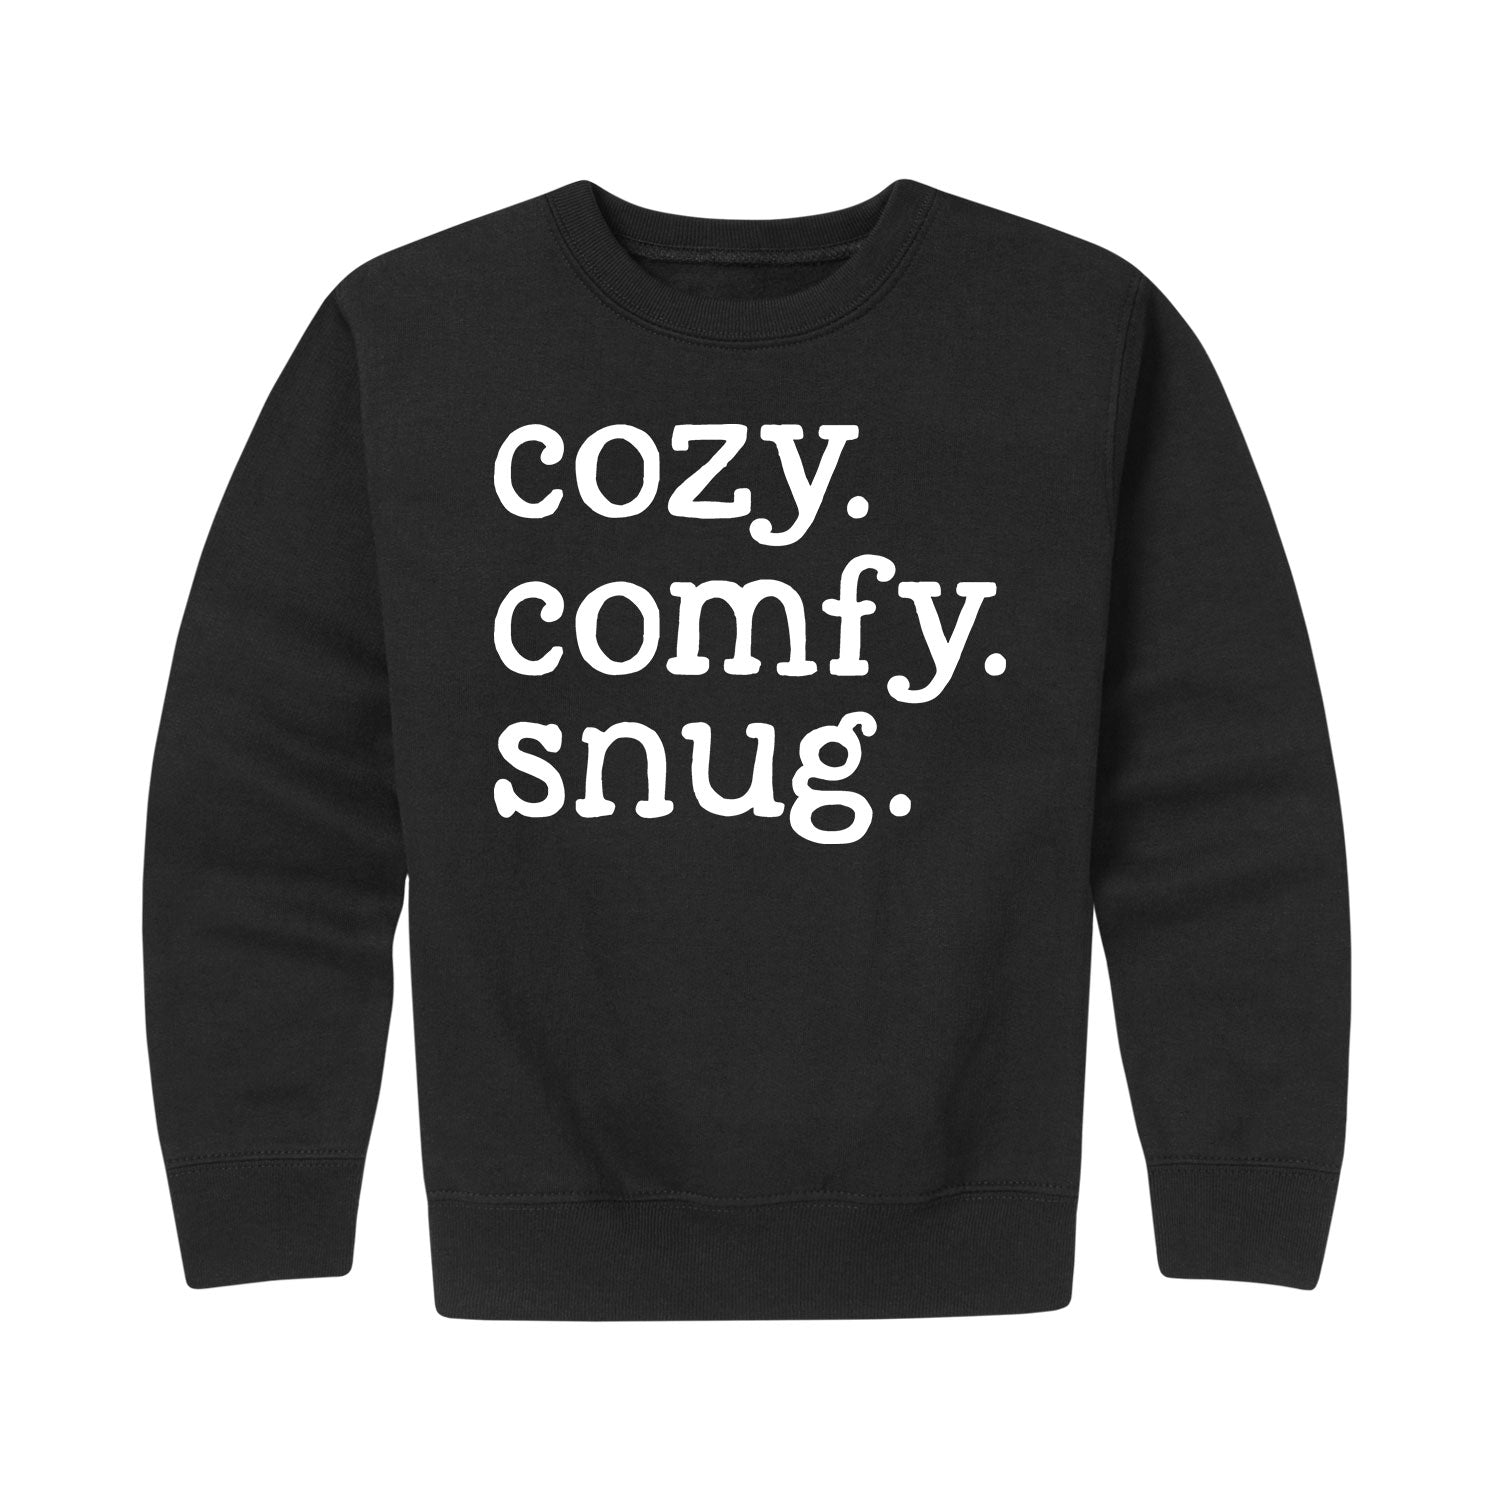 Cozy Comfy Snug - Youth & Toddler Crew Neck Fleece